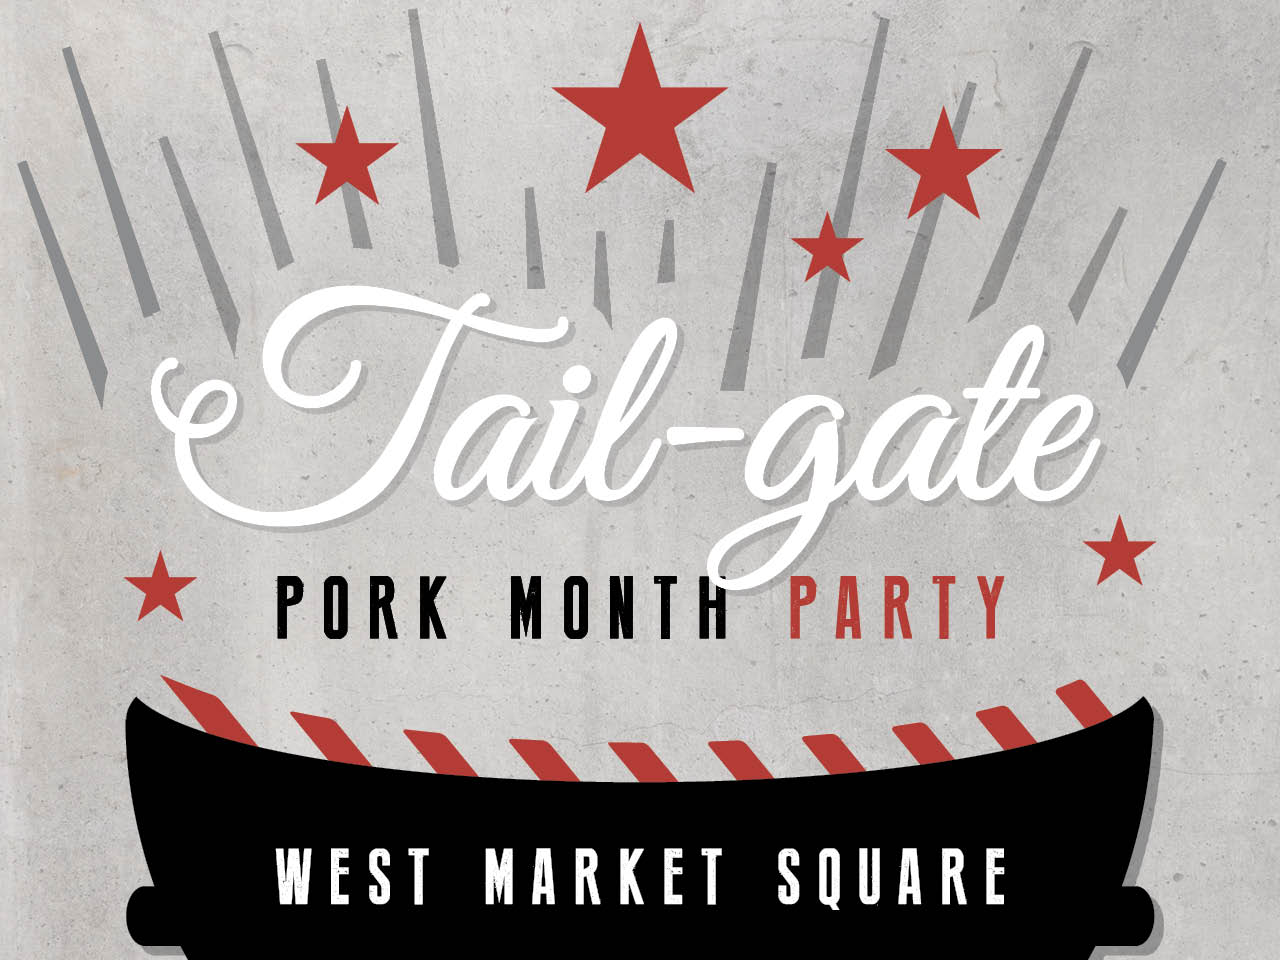 West Market Square Tail-gate